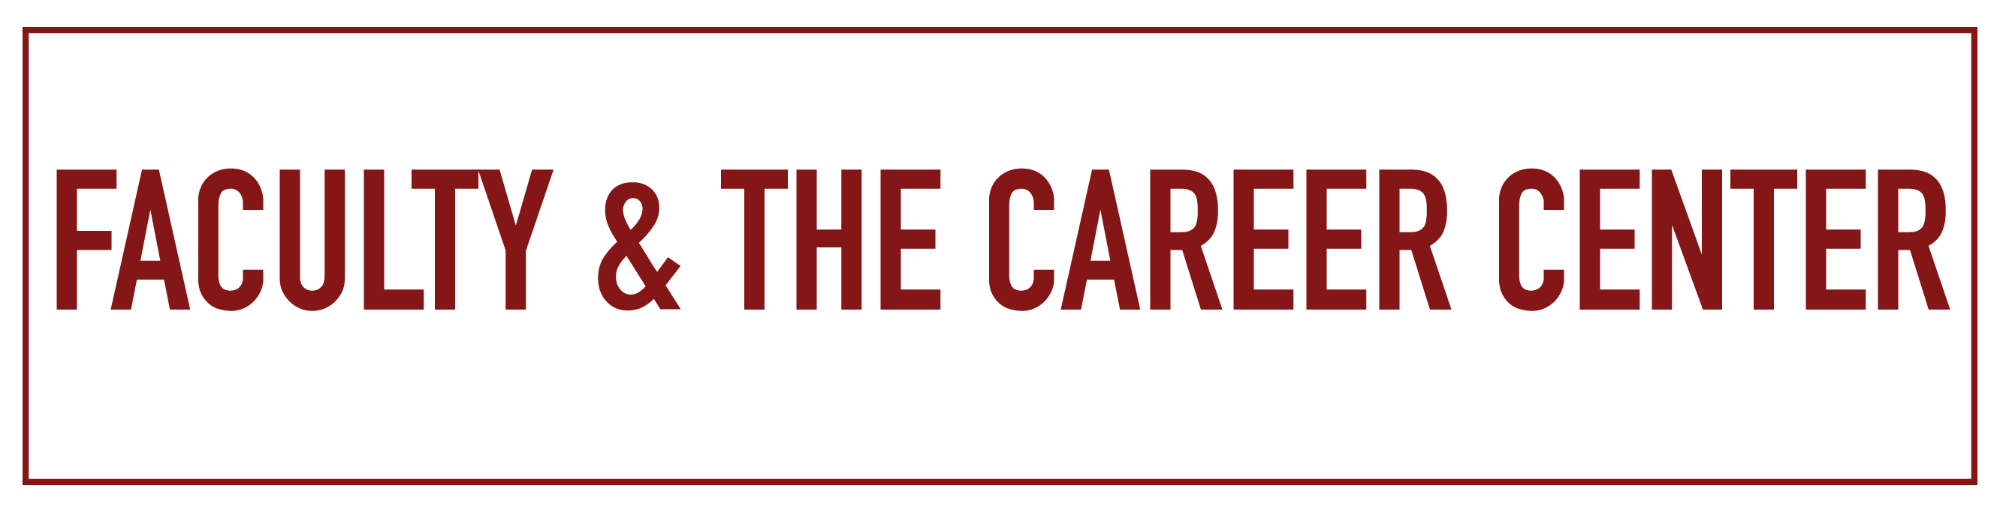 faculty-and-career-services-header